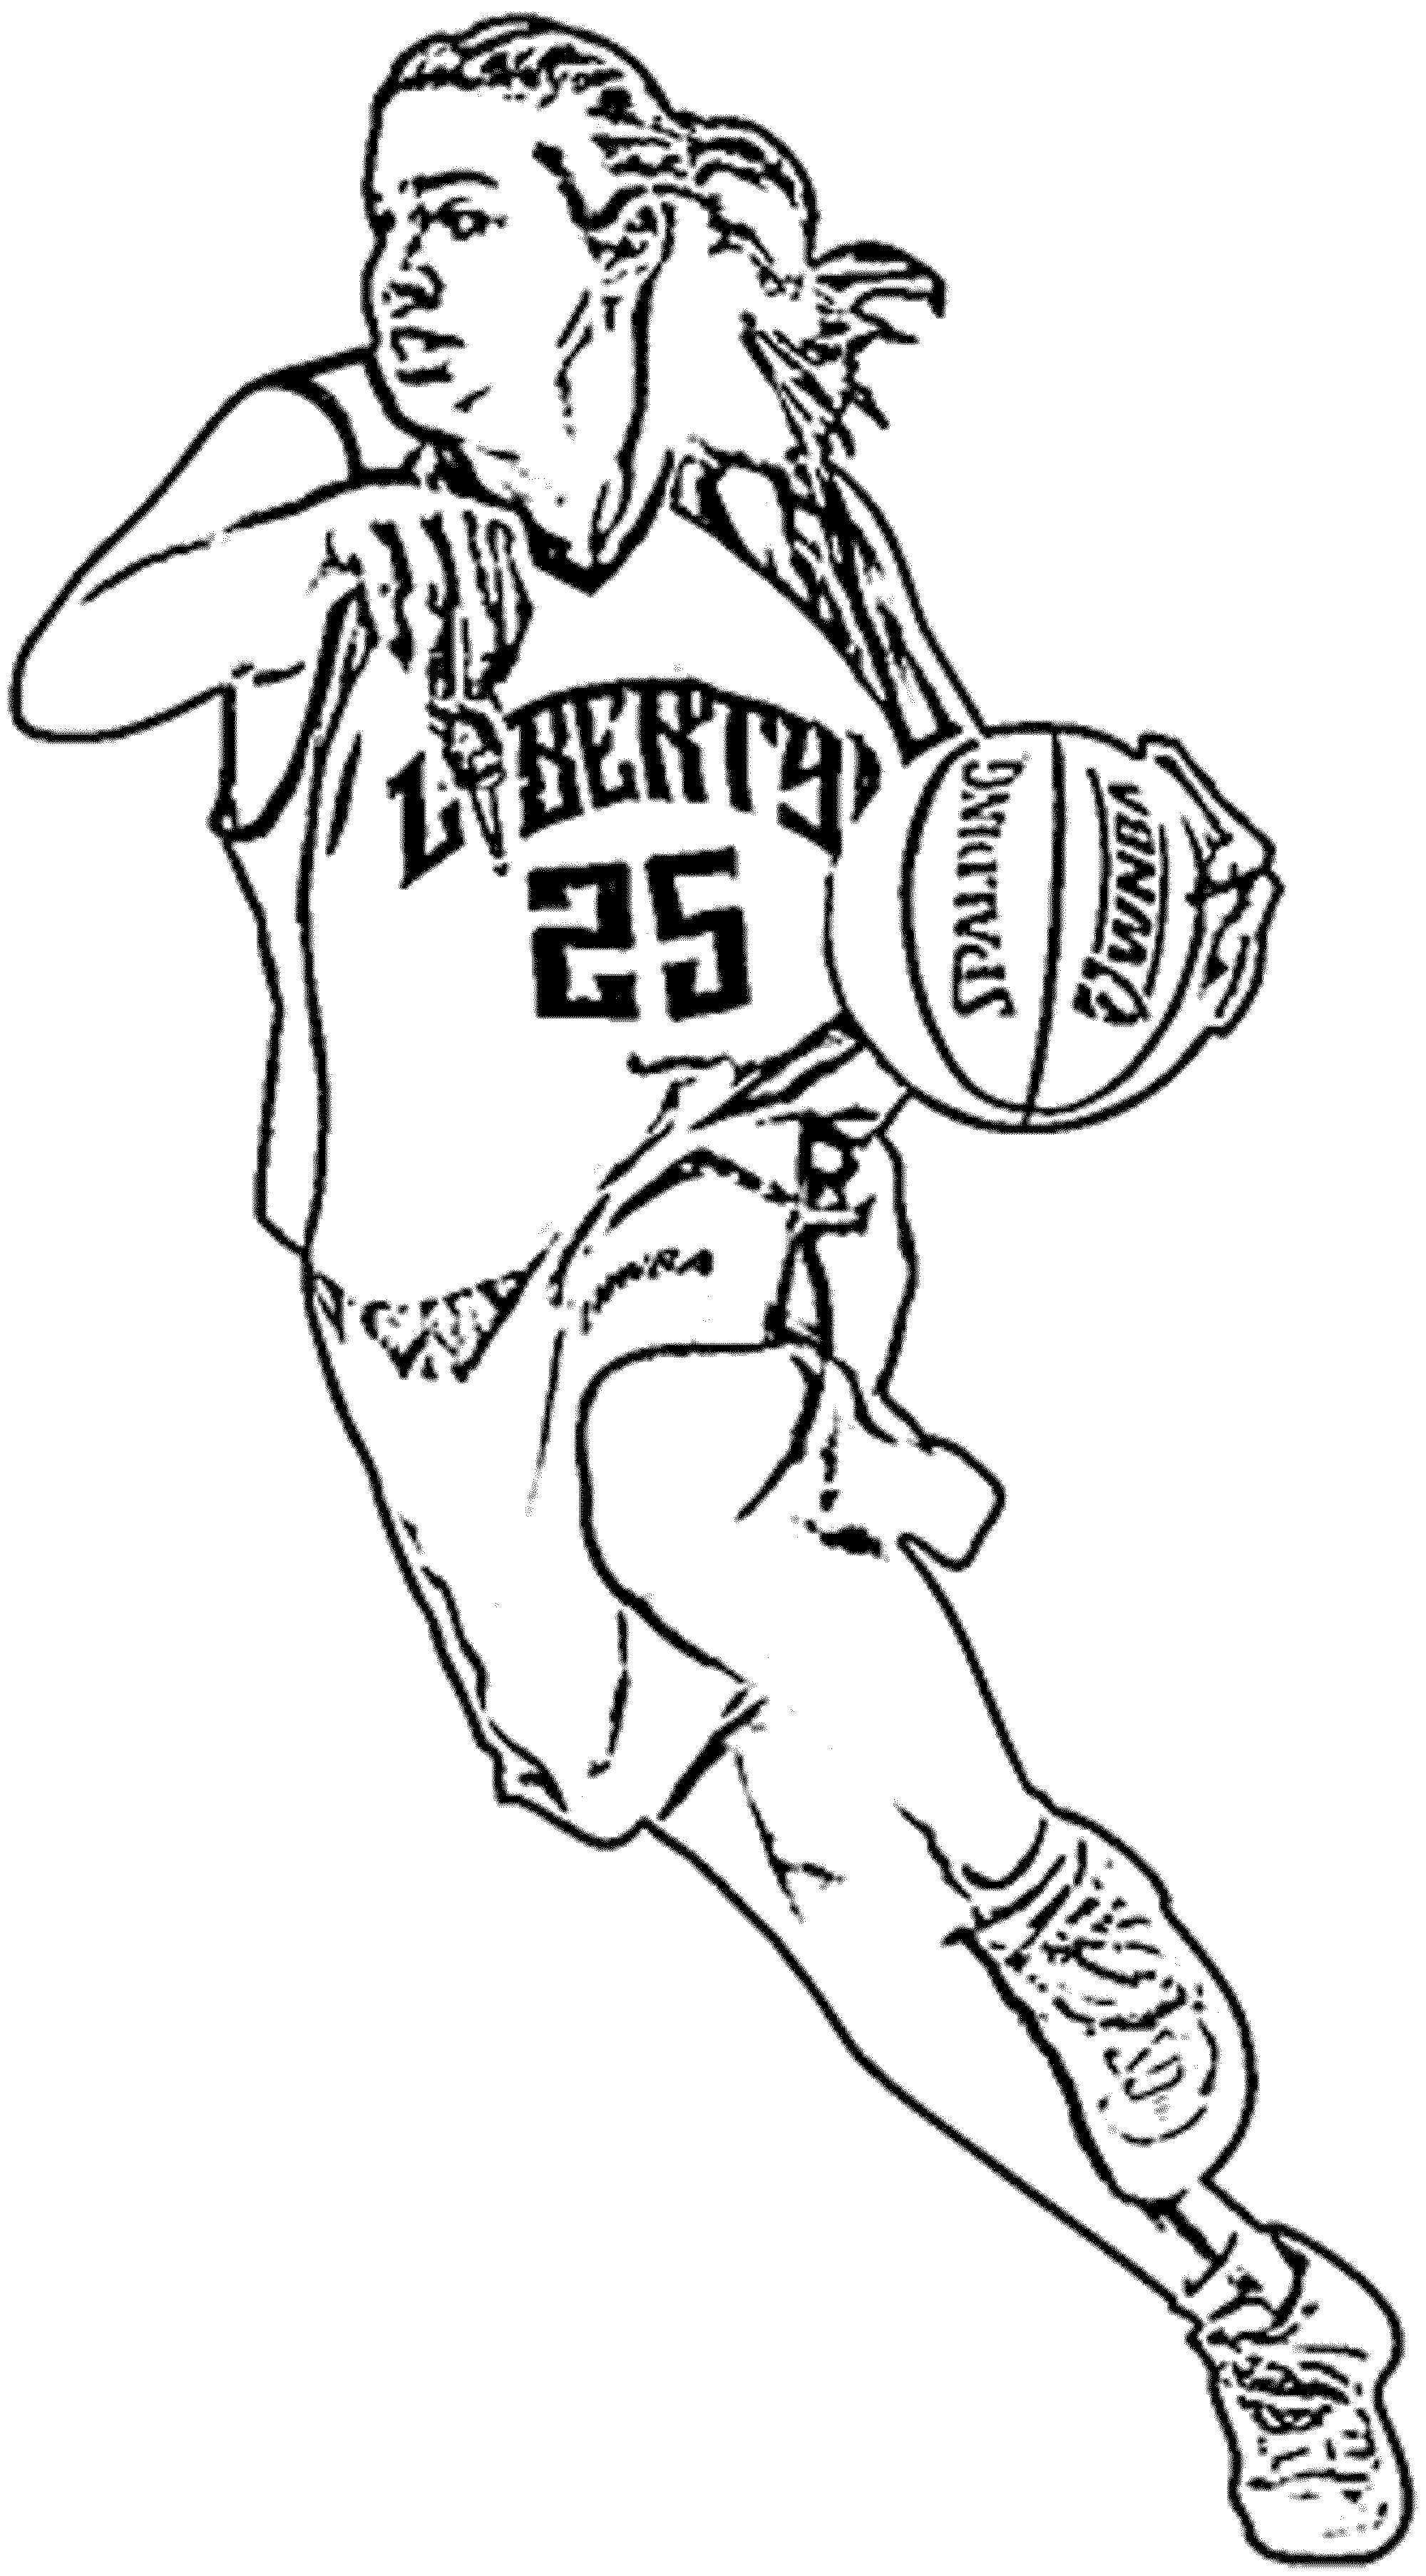 basketball player coloring pages - photo#2